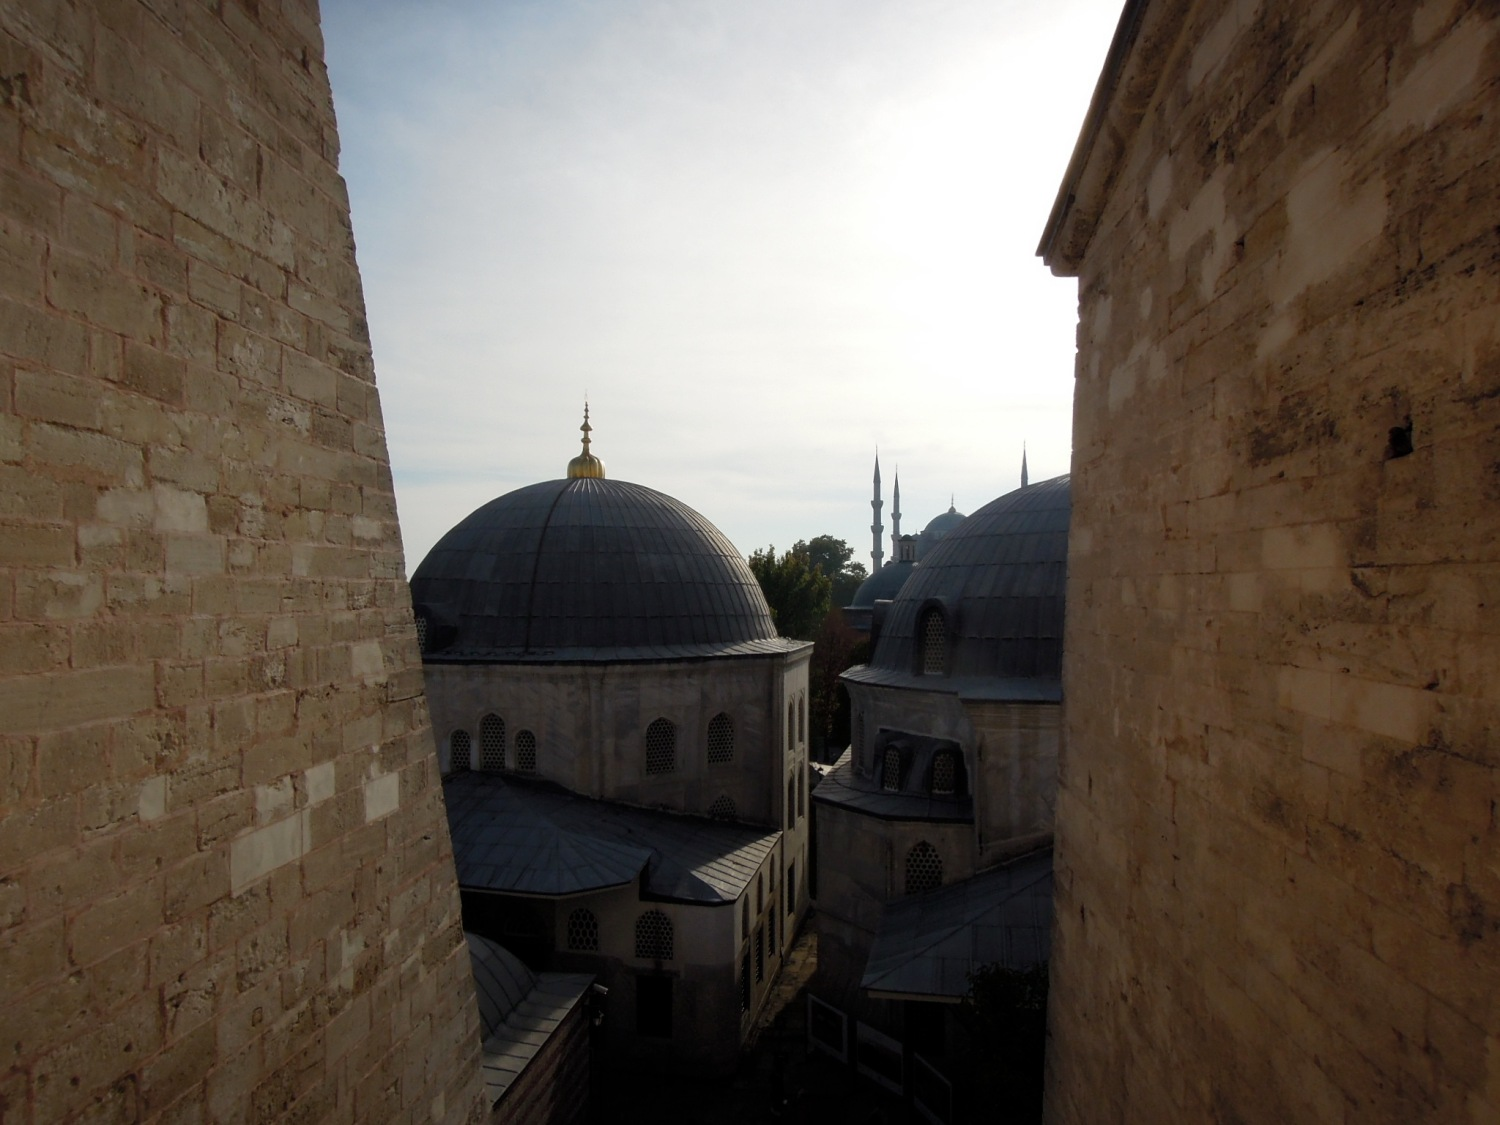 Domes outside a window of the Aya Sofya